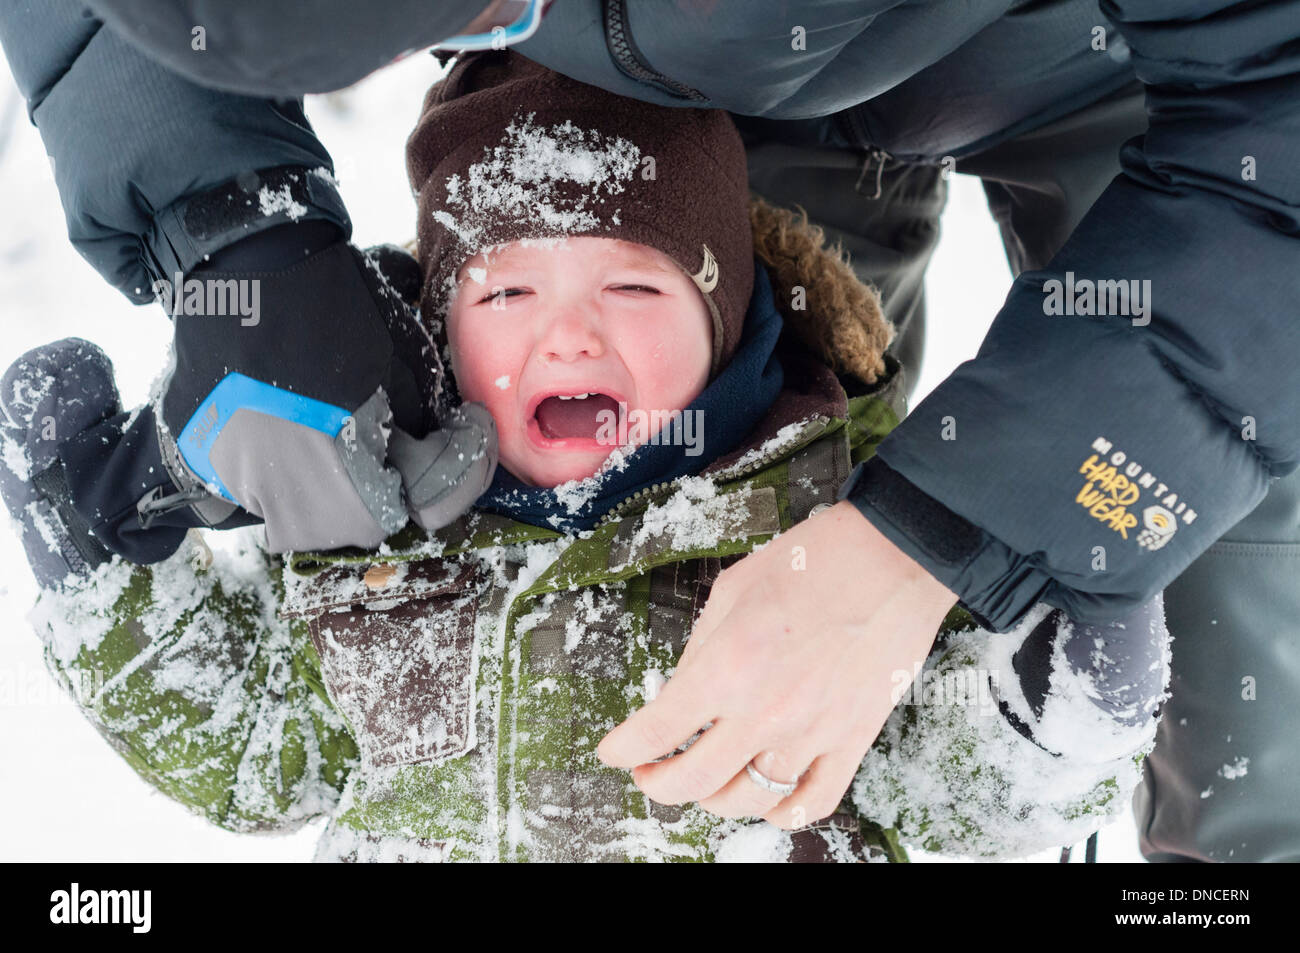 A 20 moth old baby boy crying after falling face first into snow - Stock Image